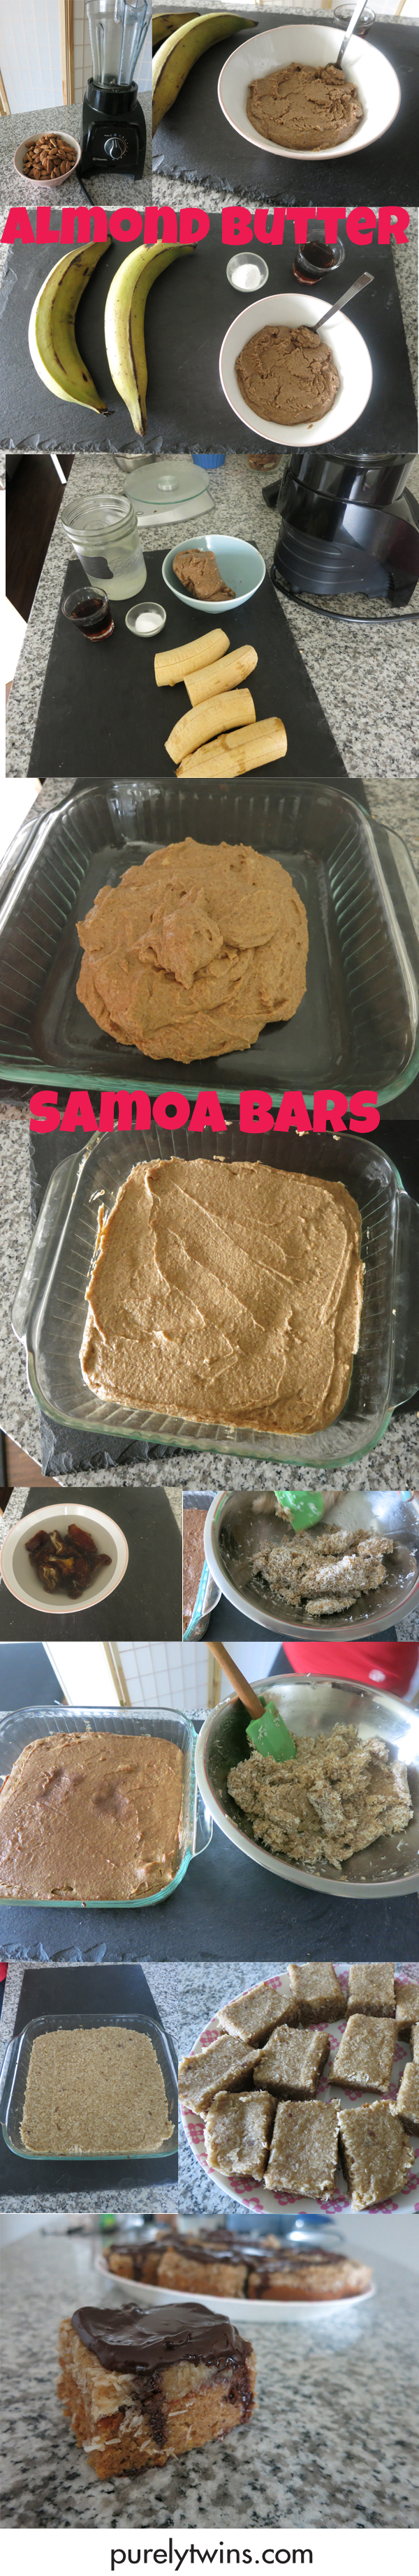 how to make almond butter samoa bars